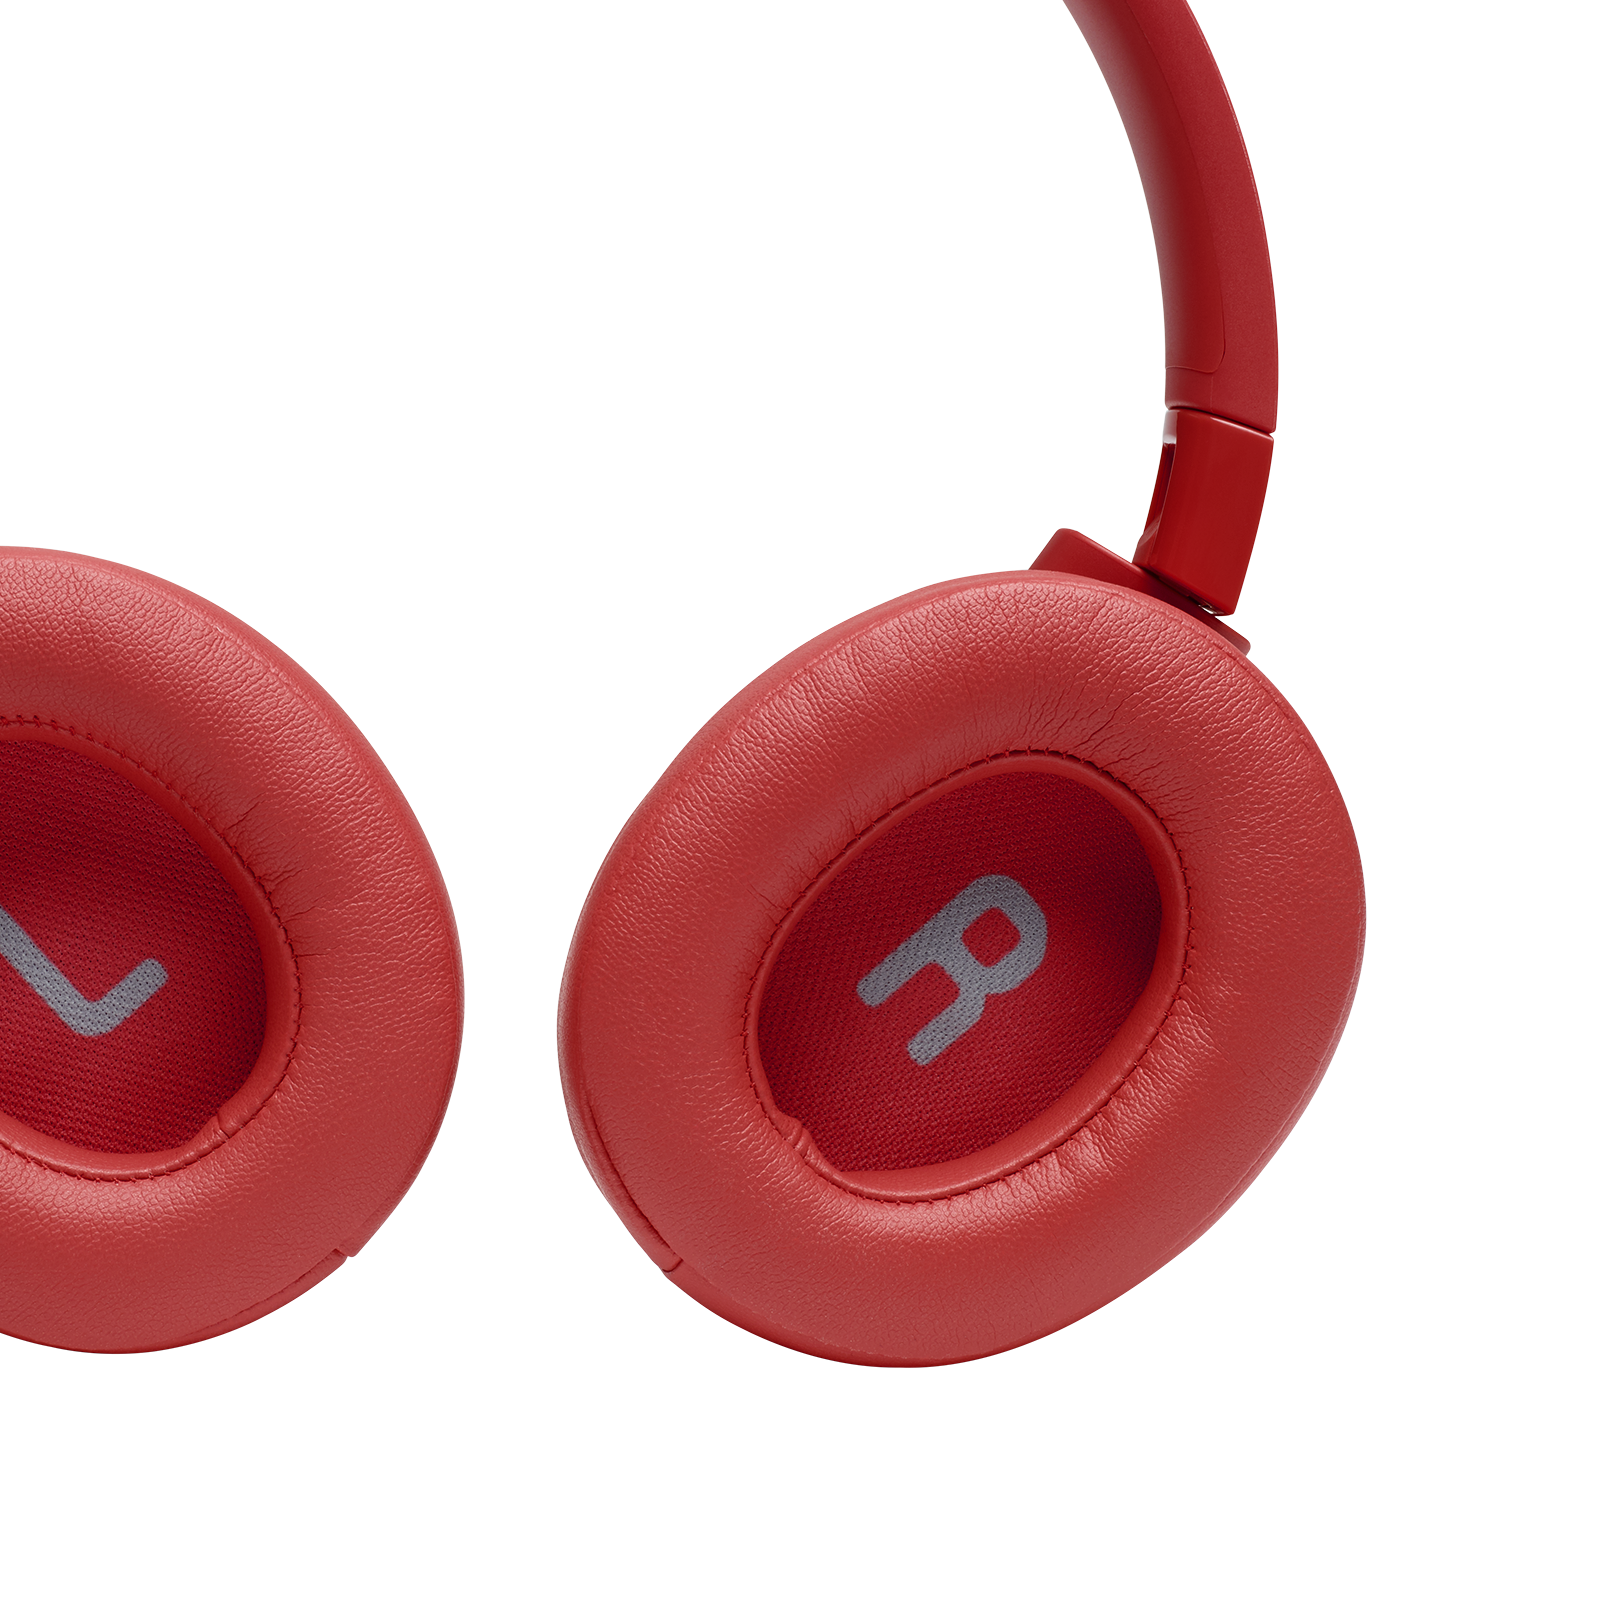 JBL TUNE 700BT - Coral Orange - Wireless Over-Ear Headphones - Detailshot 6